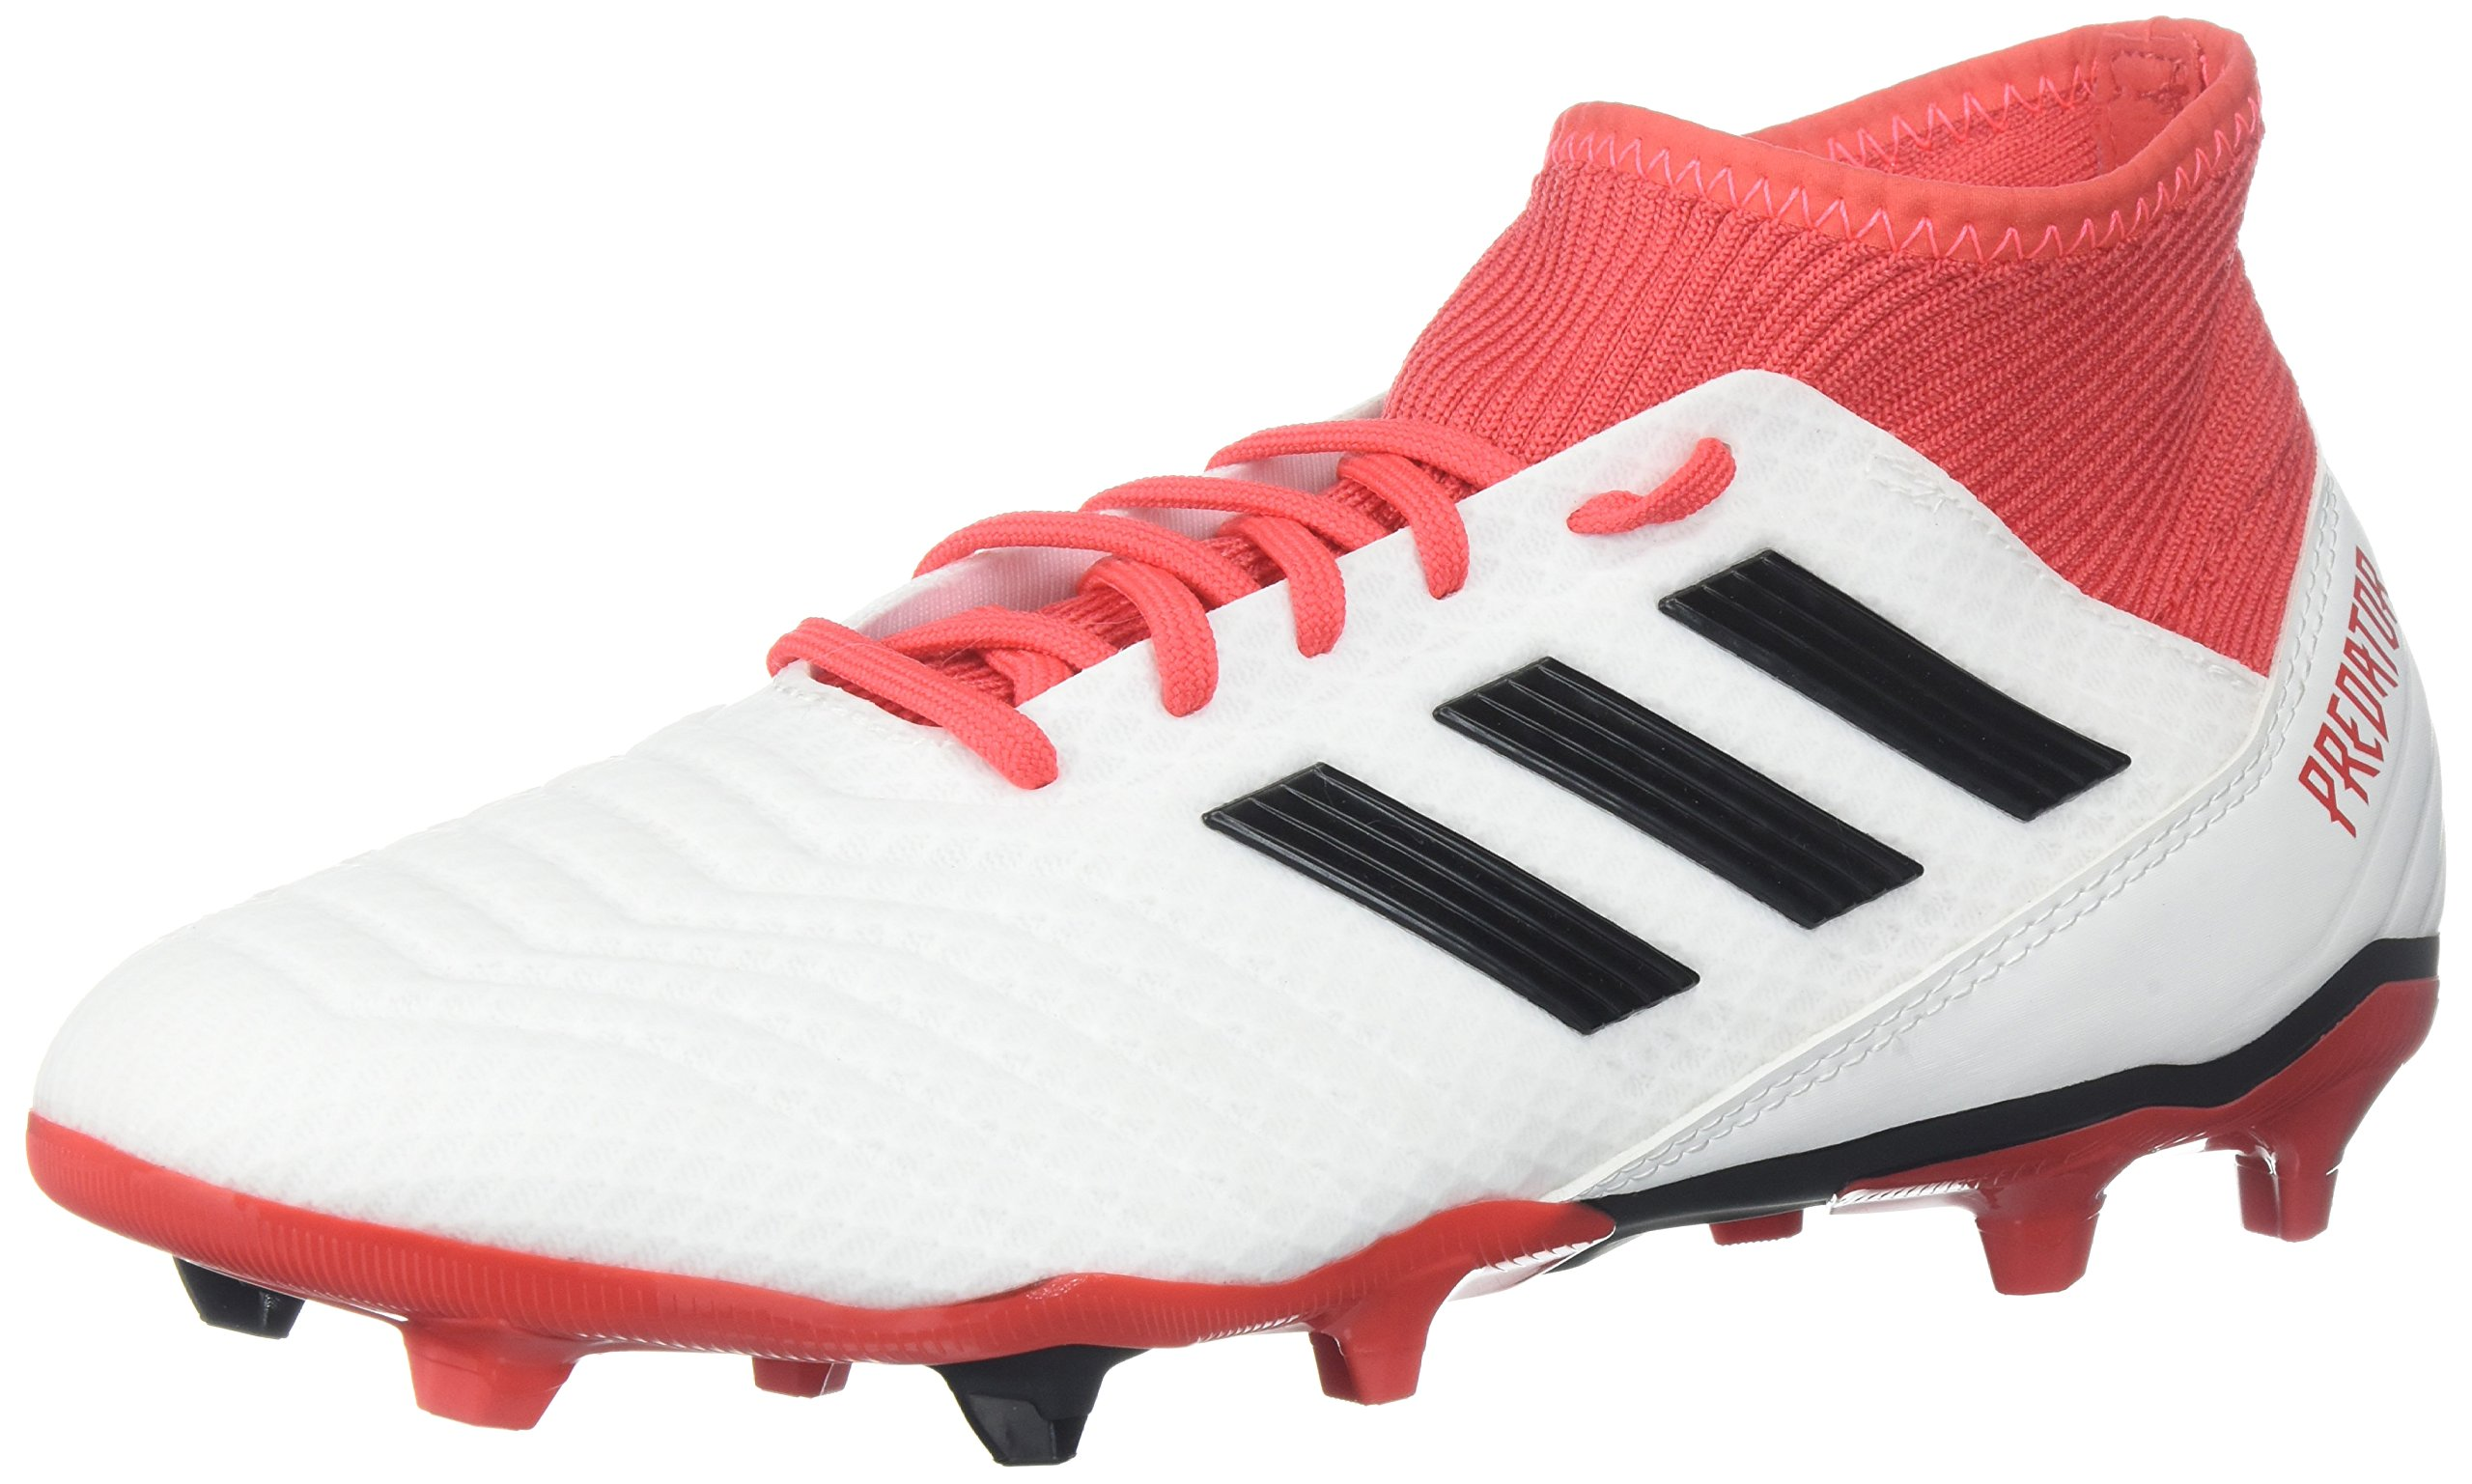 adidas Ace 18.3 FG, White/Core Black/Real Coral, 10 M US by adidas